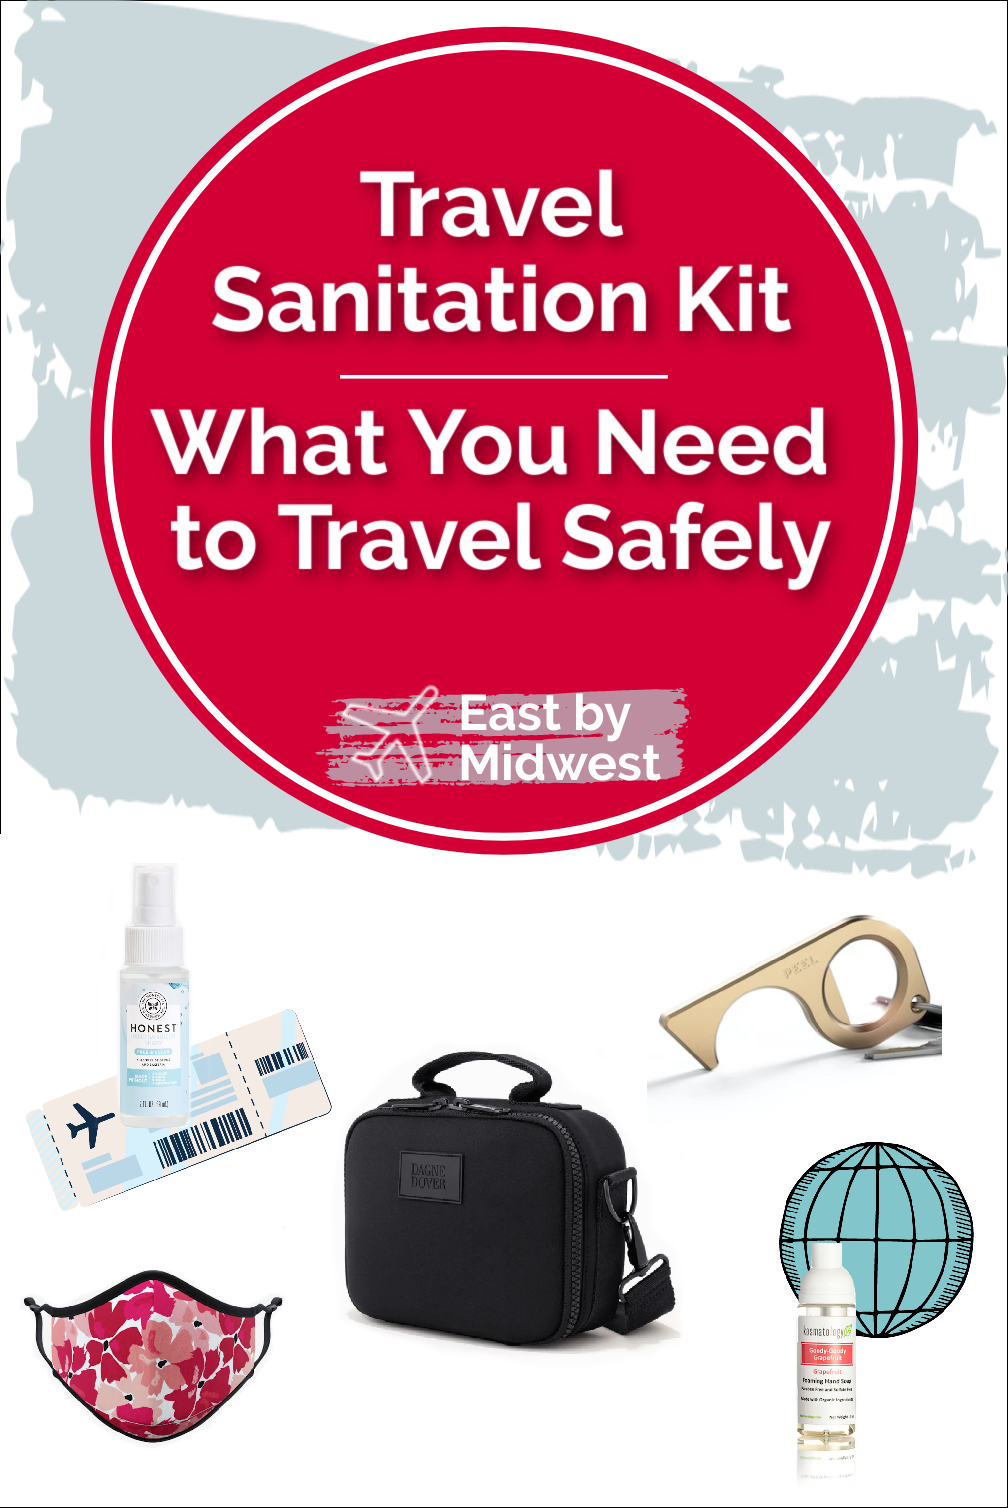 Travel Sanitation Kit - What You Need to Travel Safely